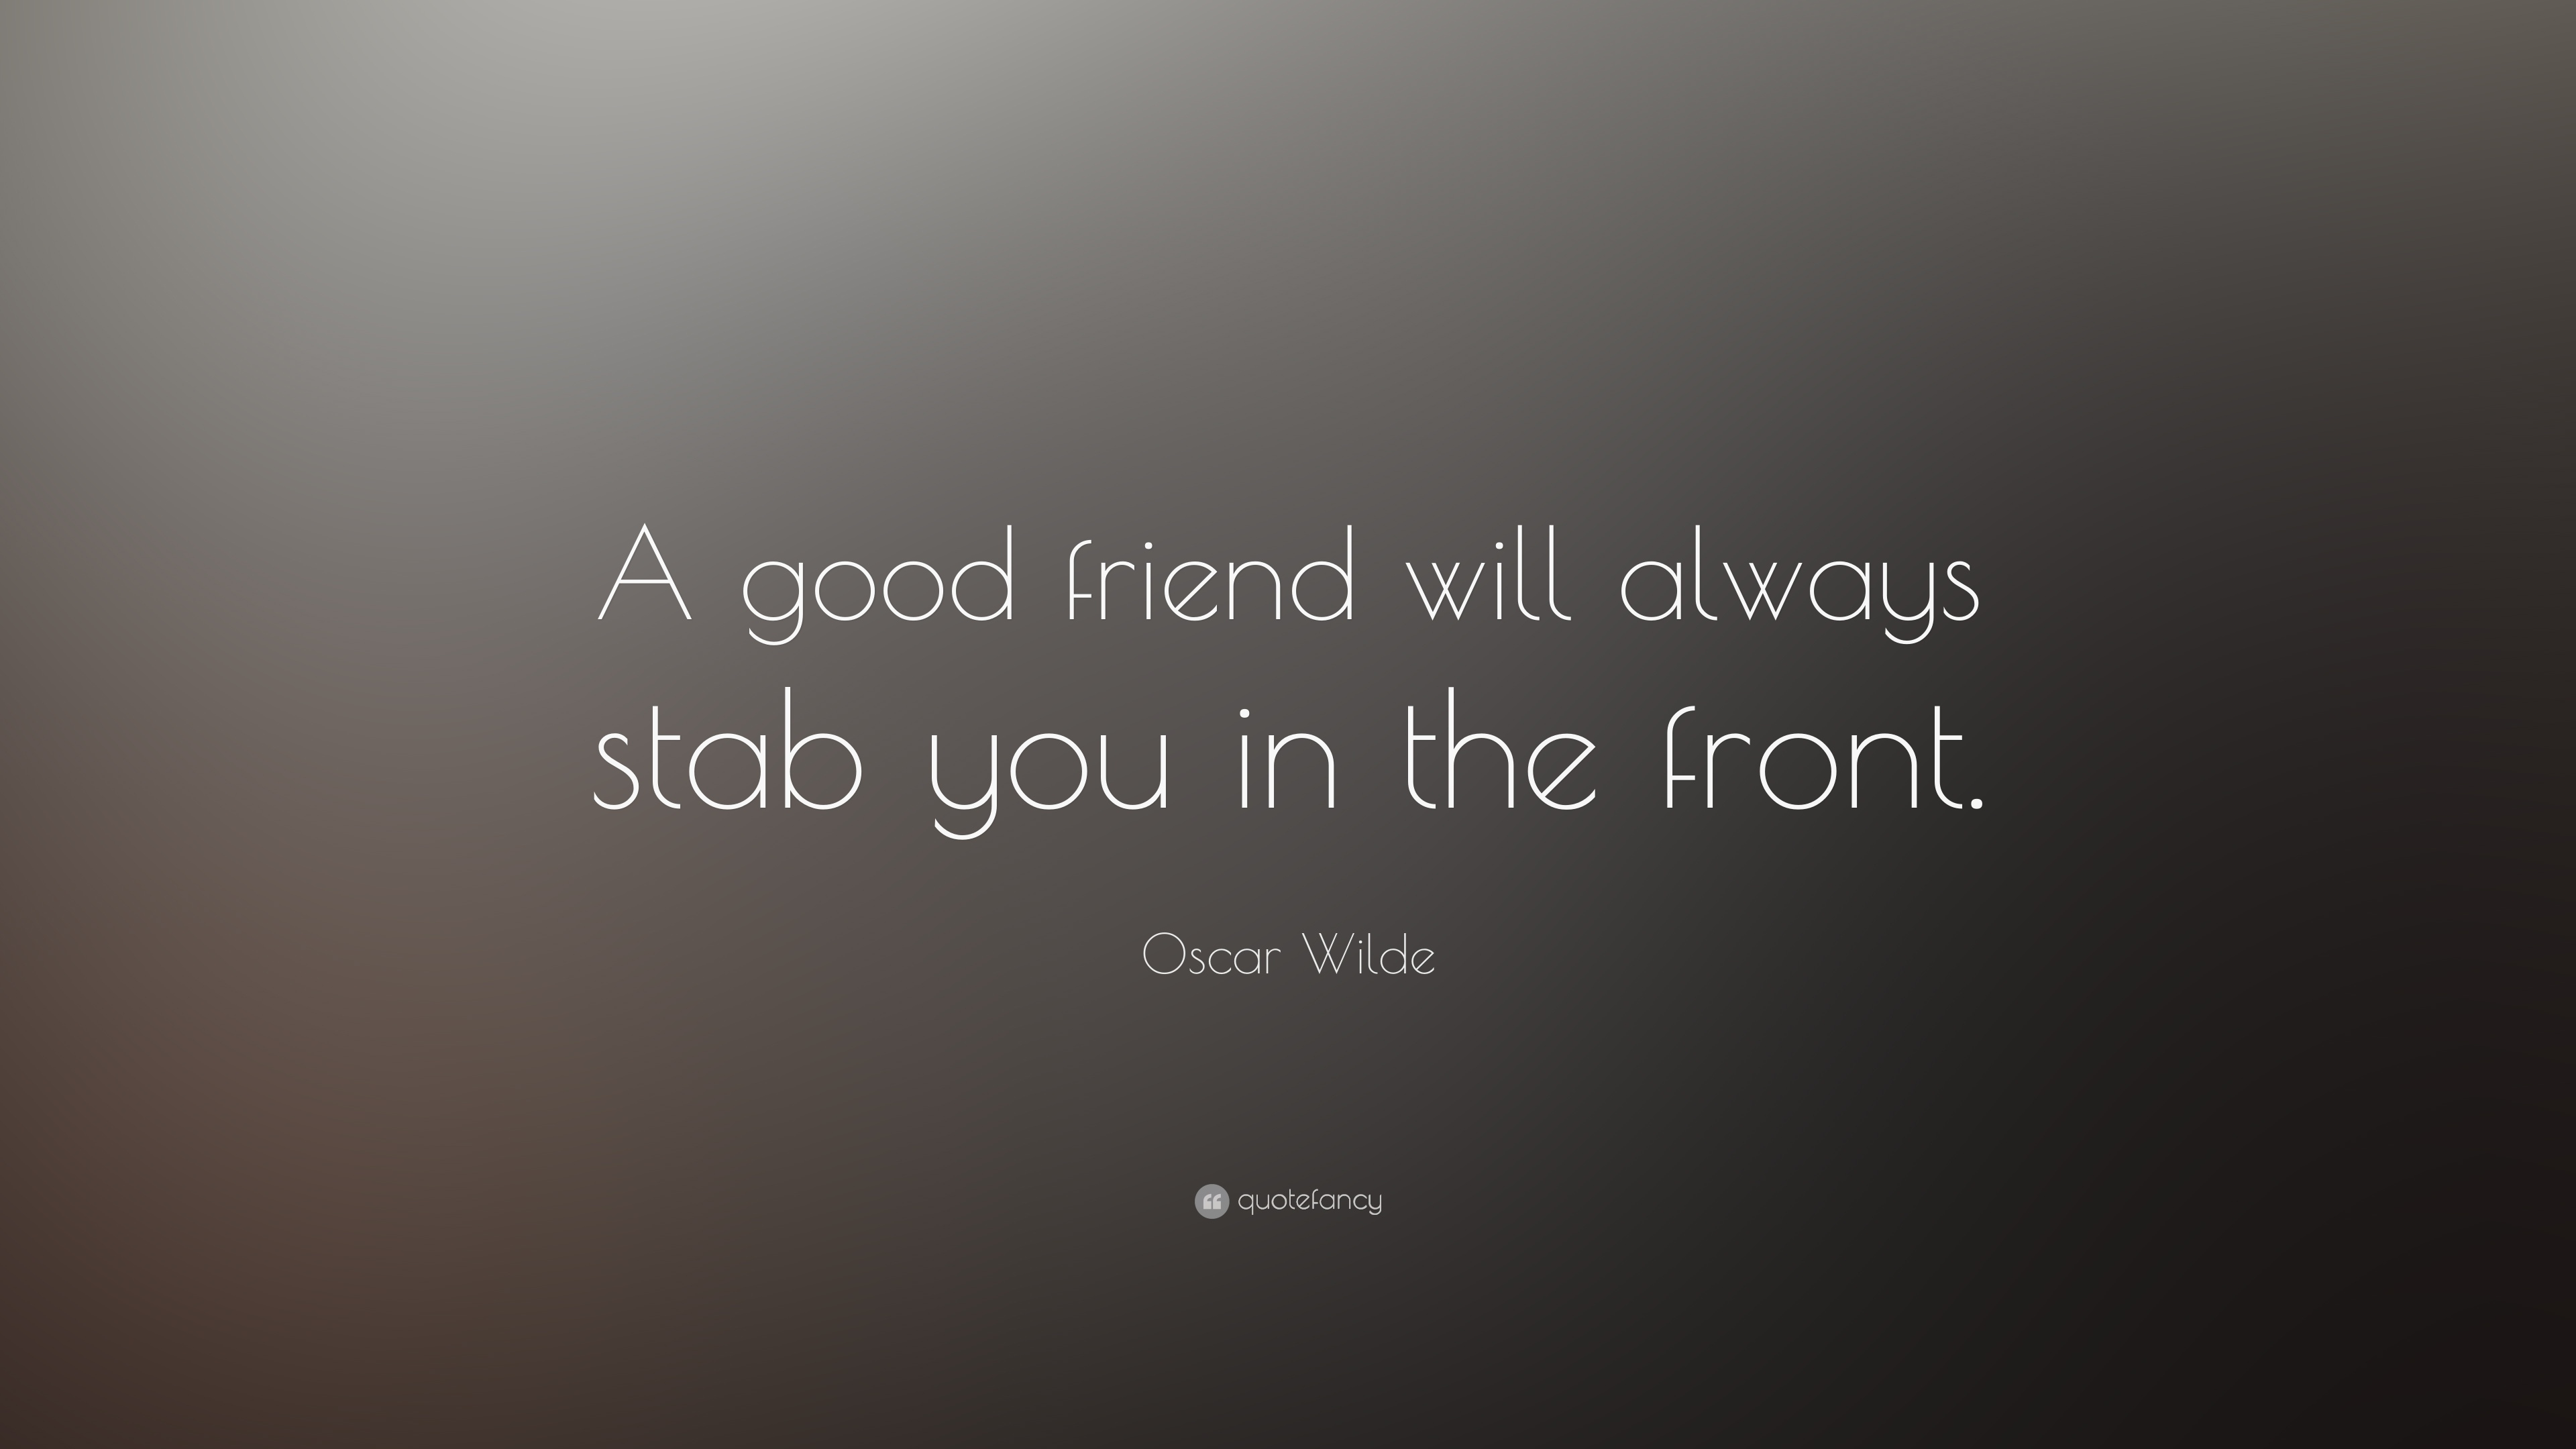 Good Quotes About Friendship Friendship Quotes 21 Wallpapers  Quotefancy